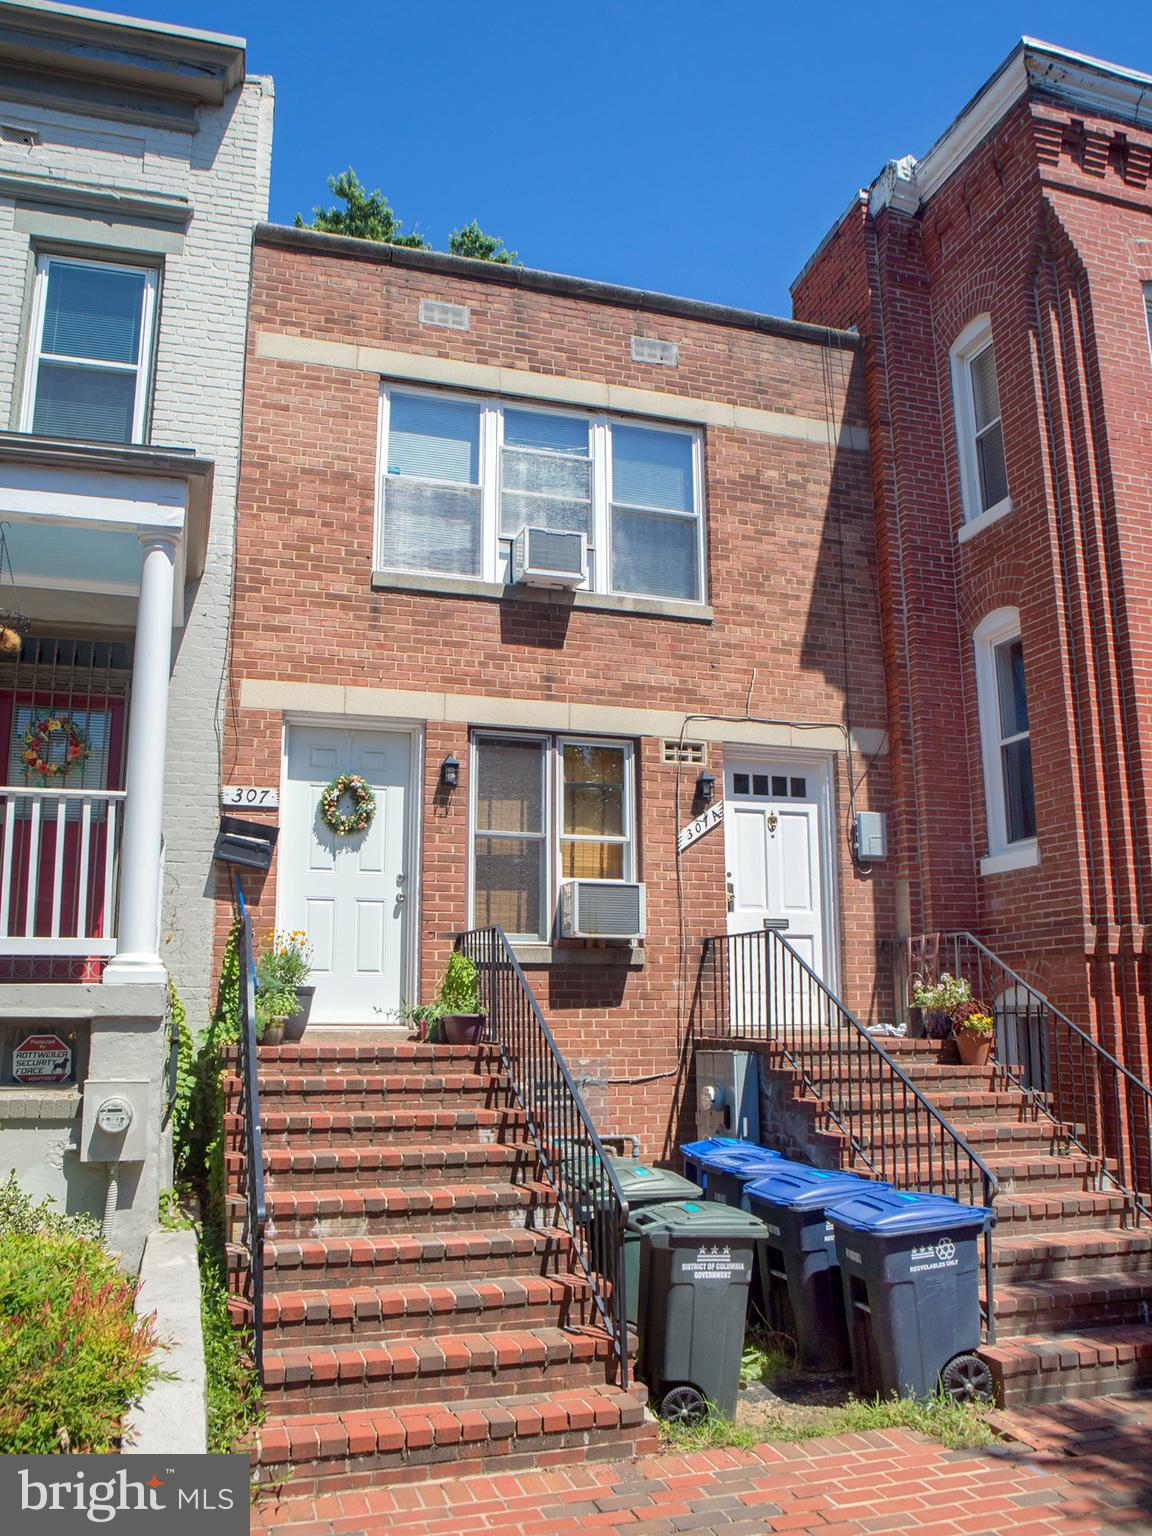 INVESTOR/Owner ALERT! Highly desirable Capitol Hill! Superb two story brick building with TWO equal self contained one bedroom units , one on each floor. Deep rear yard. In good condition but sold As IS